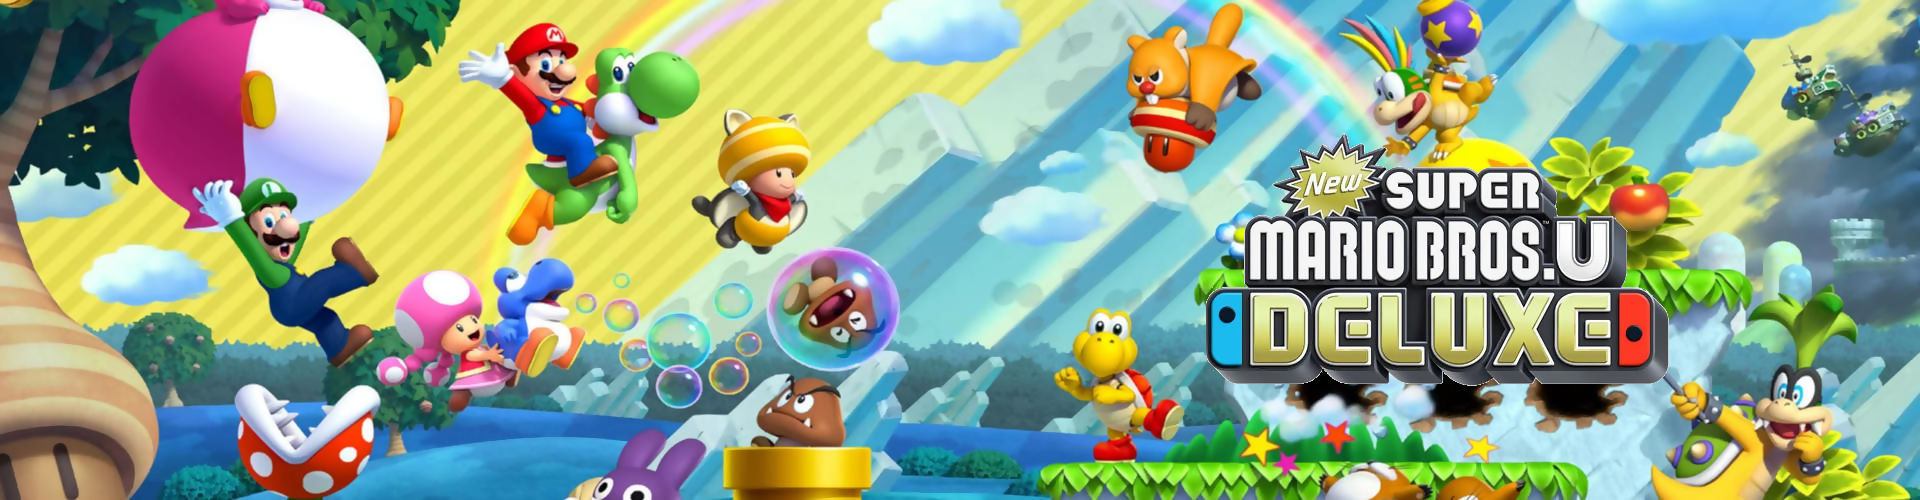 New Super Mario Bros. U Deluxe reviews are here